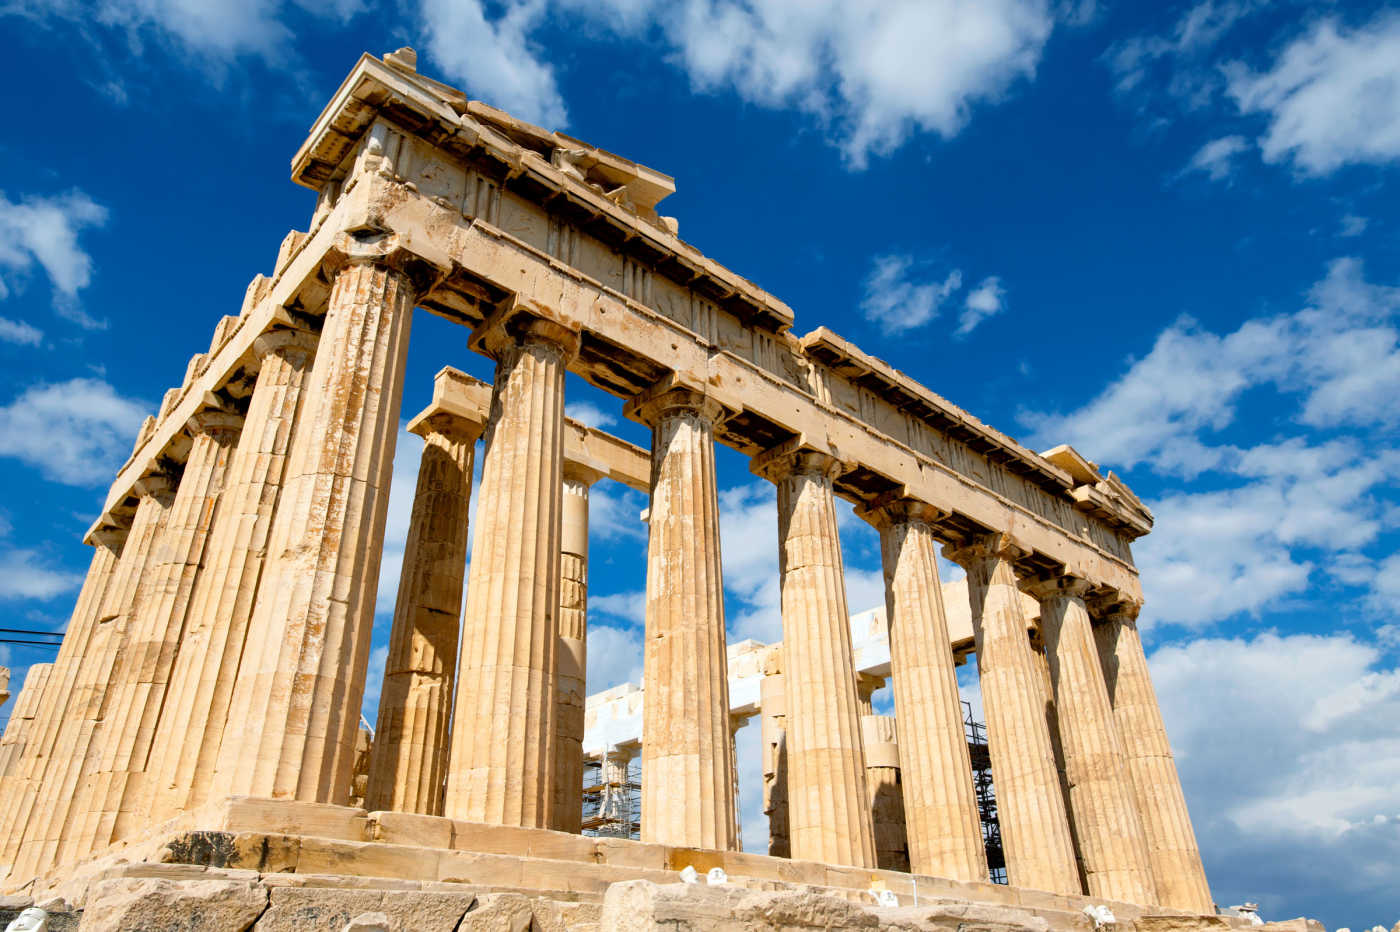 6Nt Greece Flight & Hotel Package from $3,105 for 2